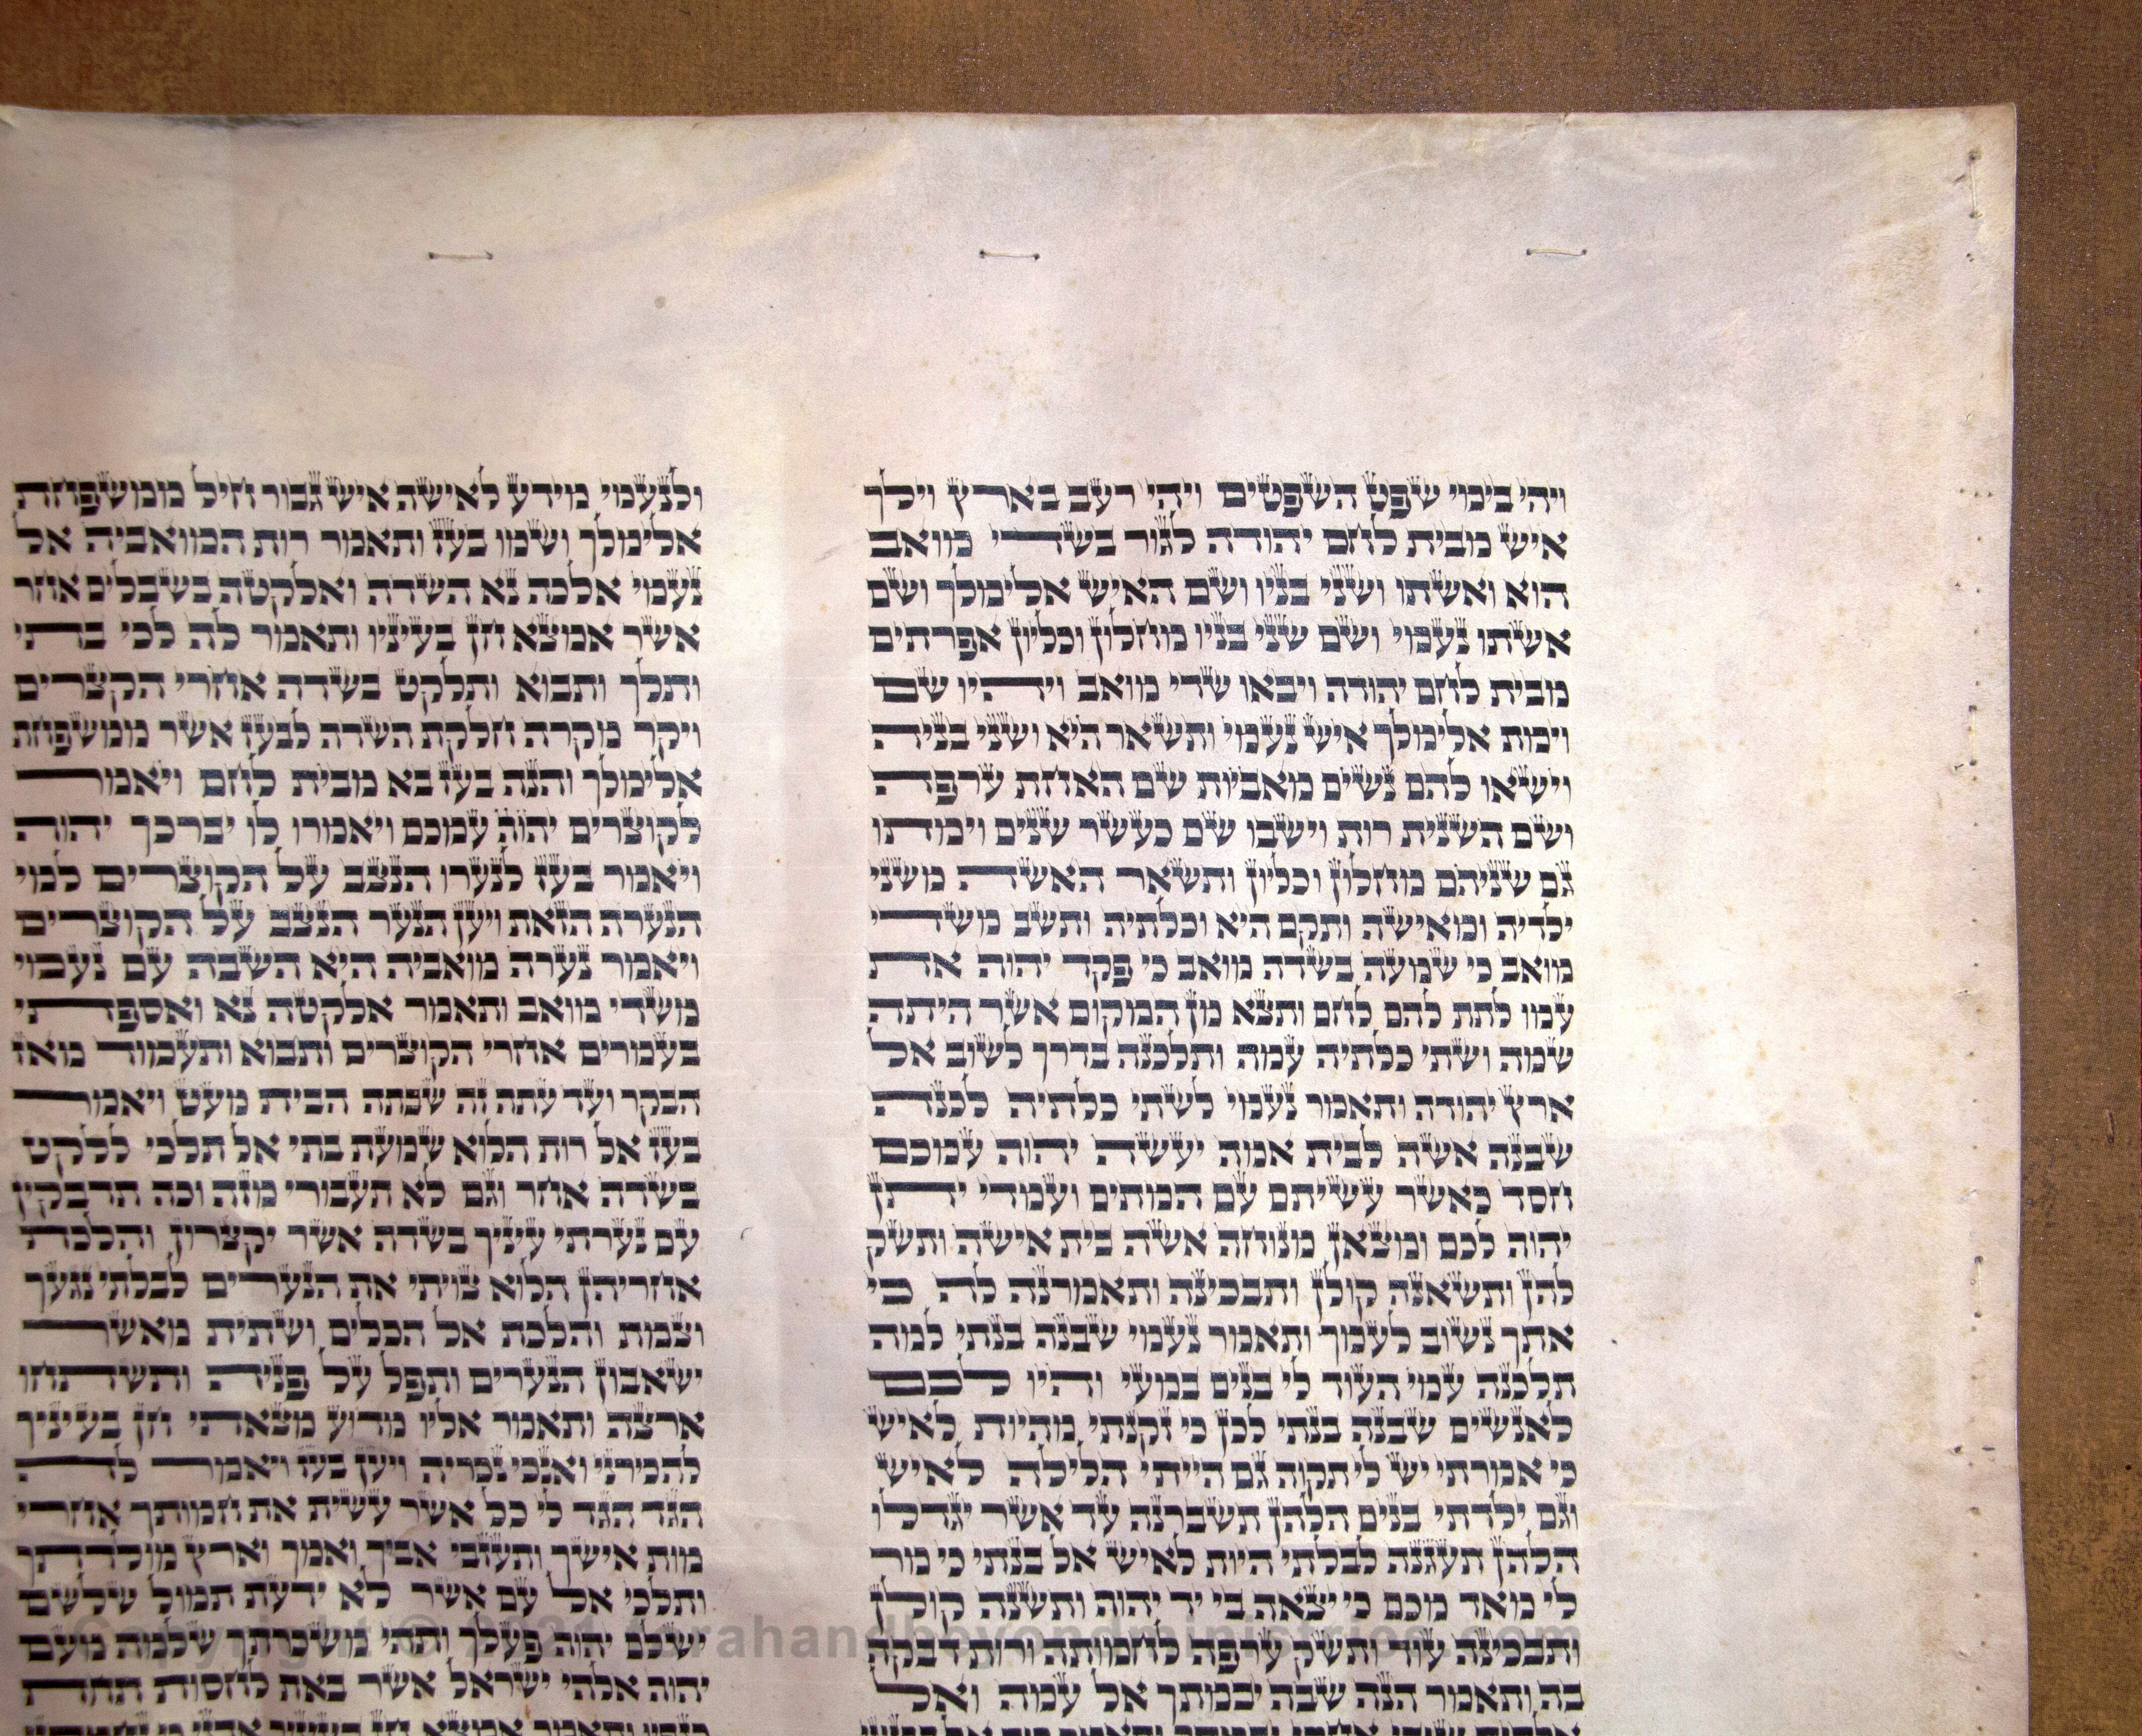 The Hebrew Scroll of Ruth showing the opening narrative and identifying Bethlehem.